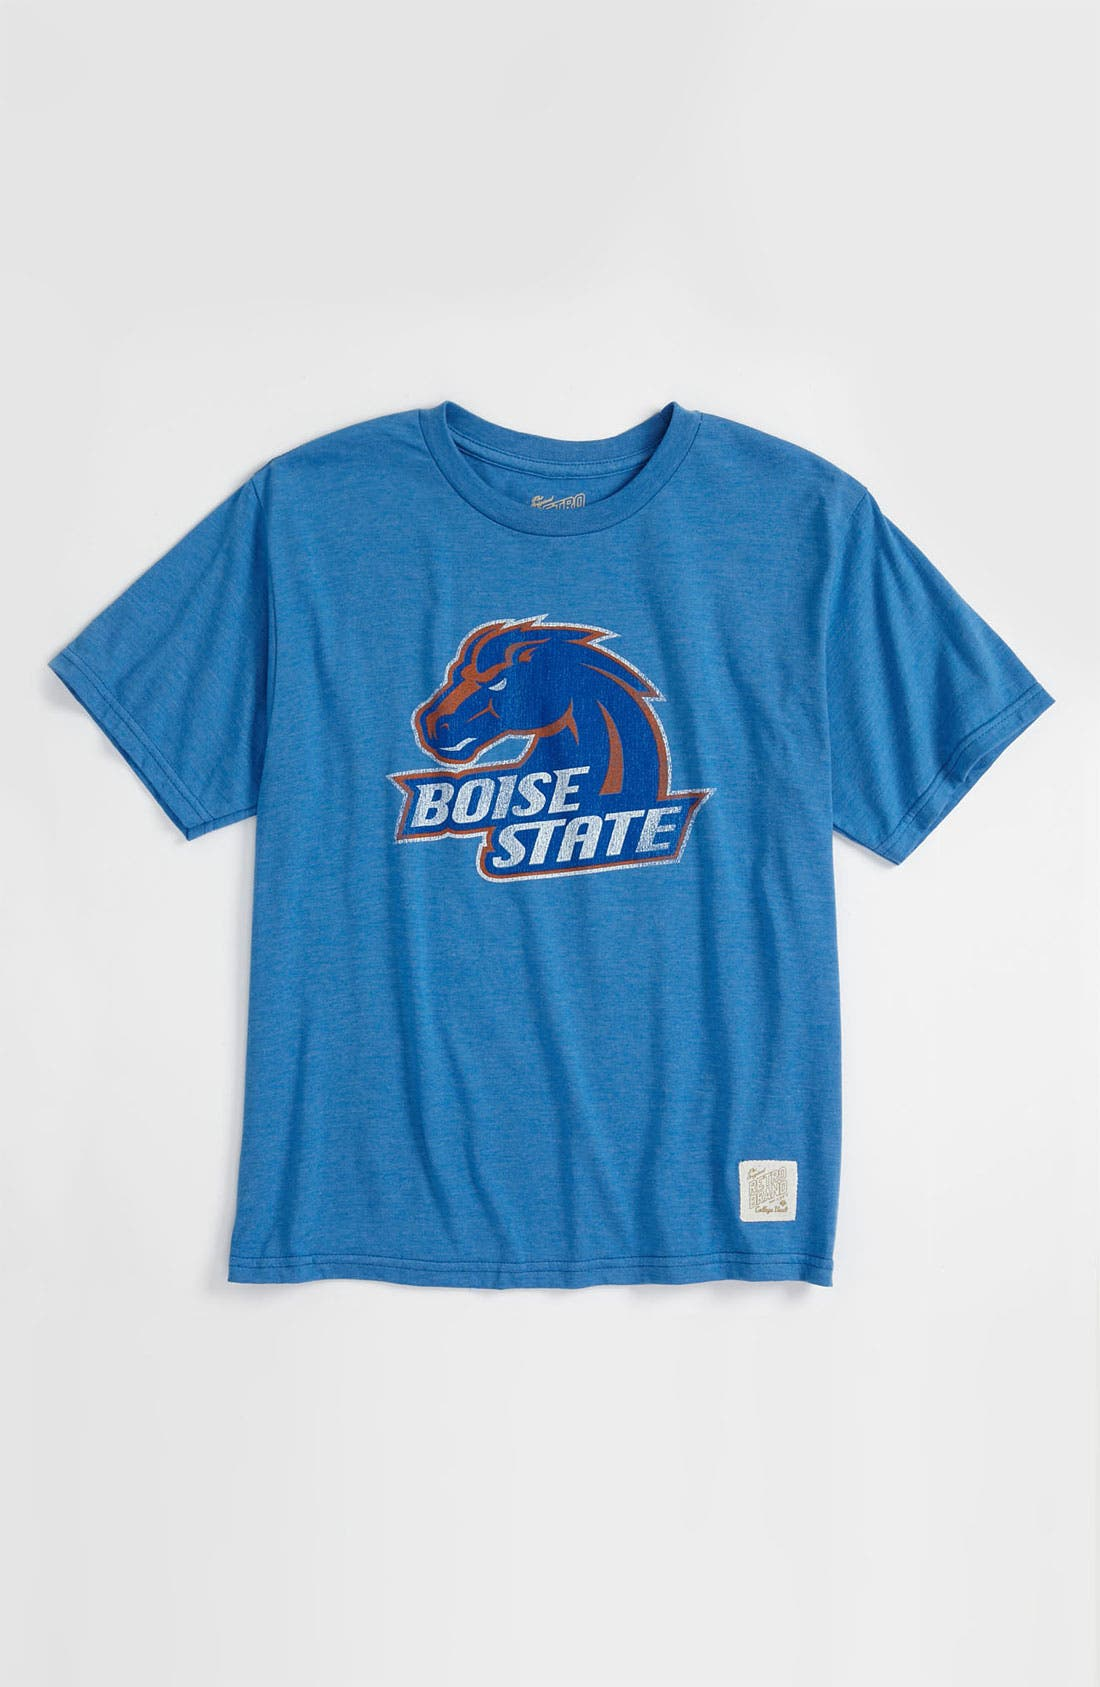 Alternate Image 1 Selected - The Original Retro Brand 'Boise State' T-Shirt (Big Boys)